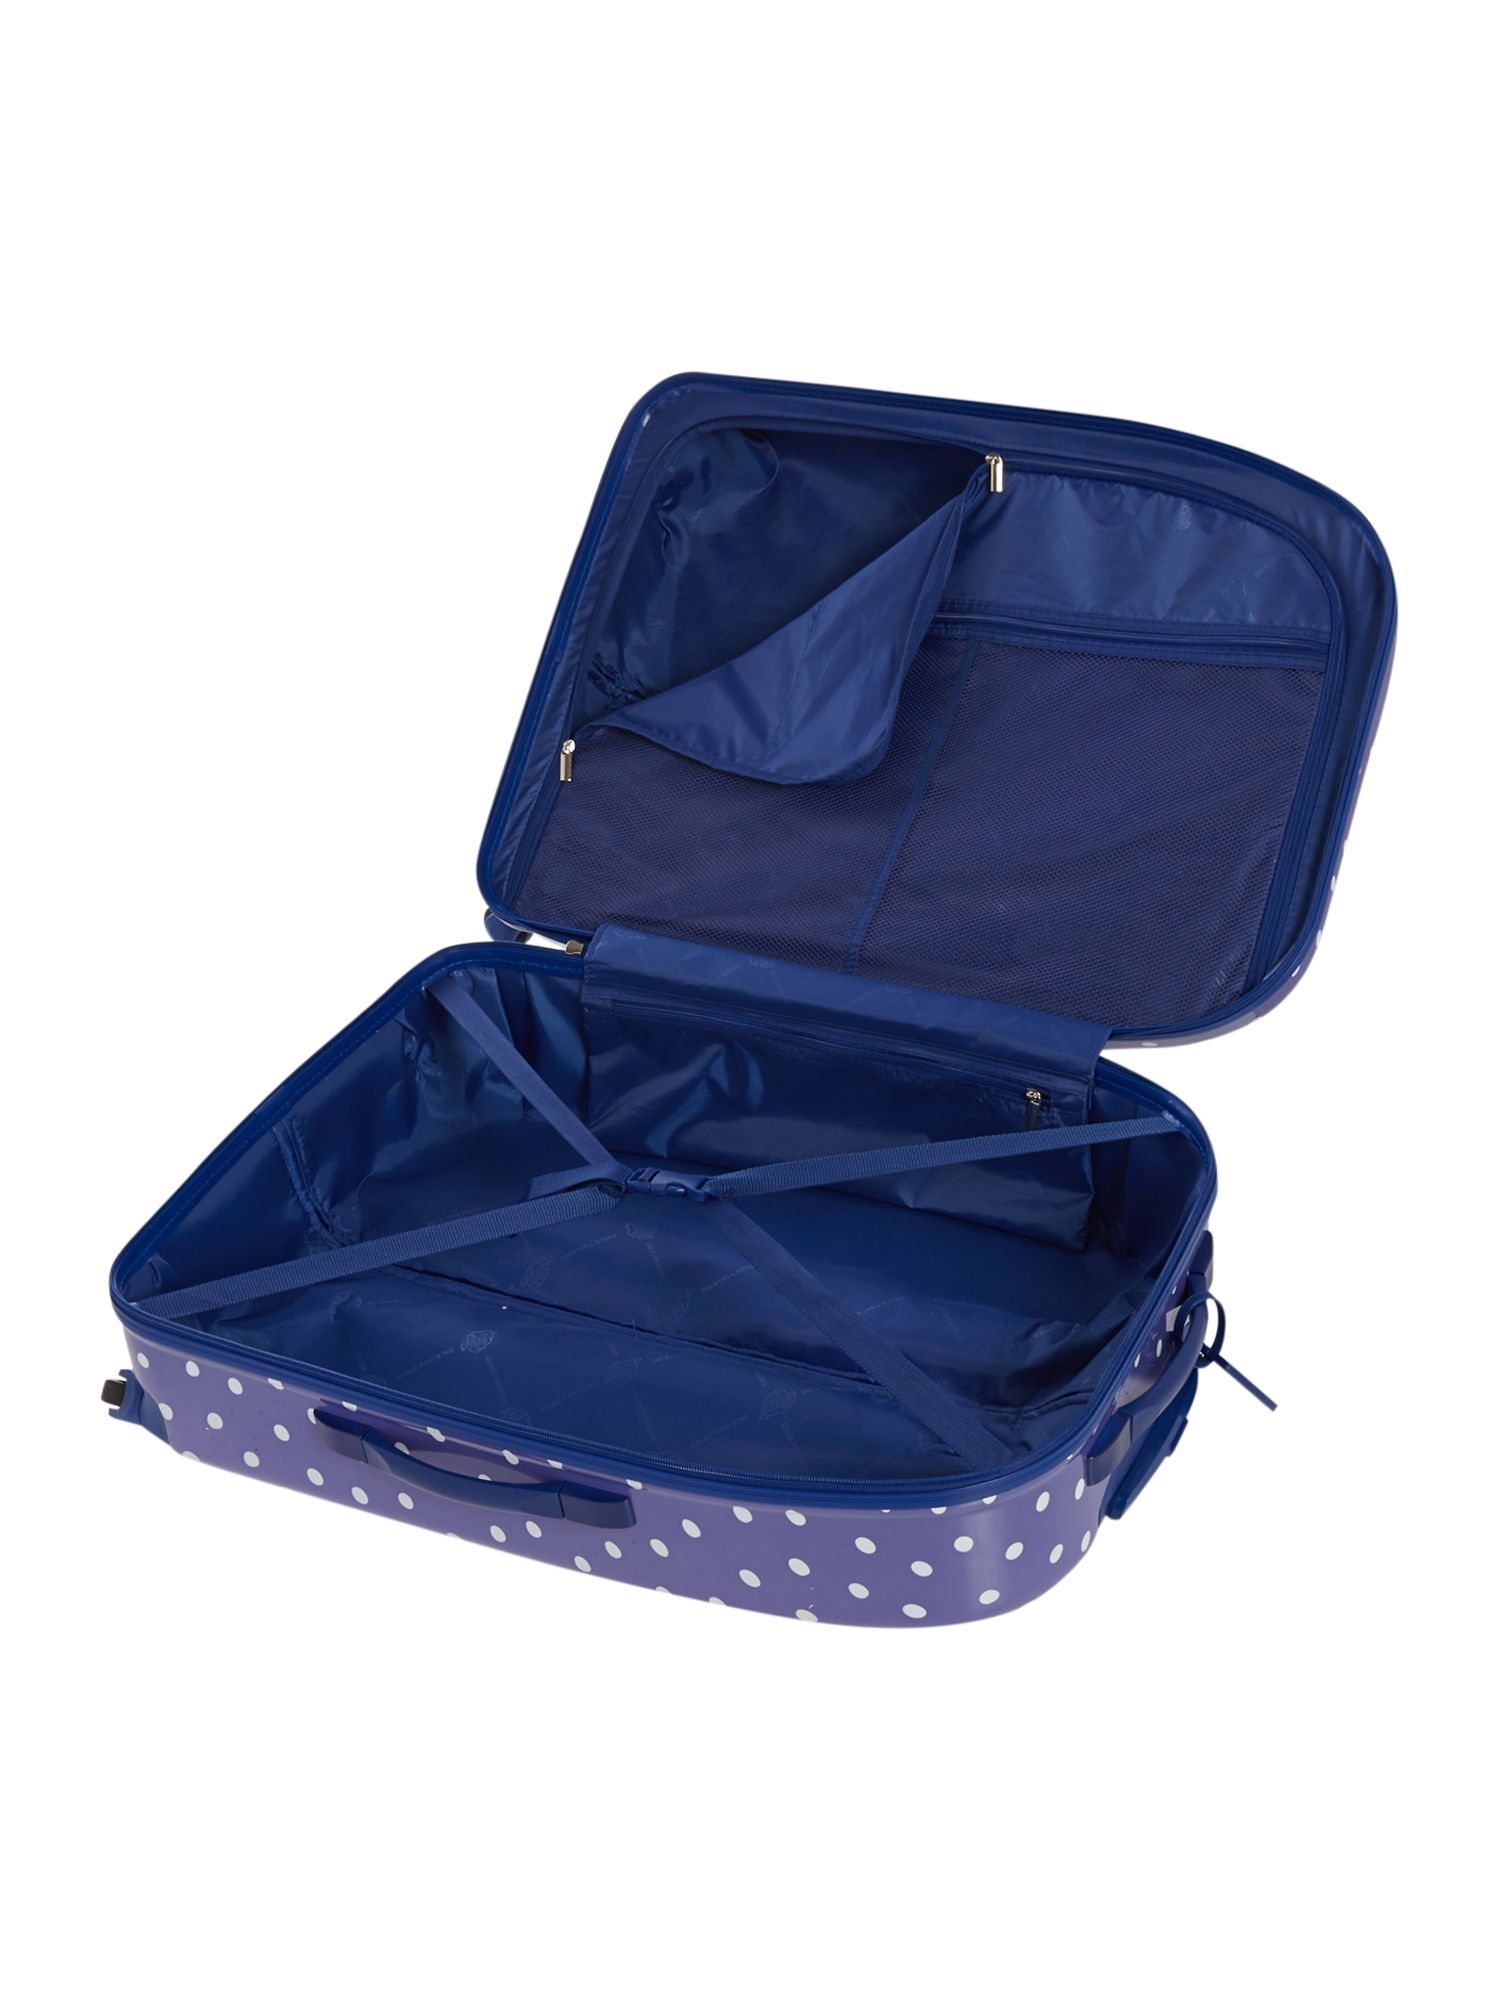 Polka dot print 4 wheel hard large case